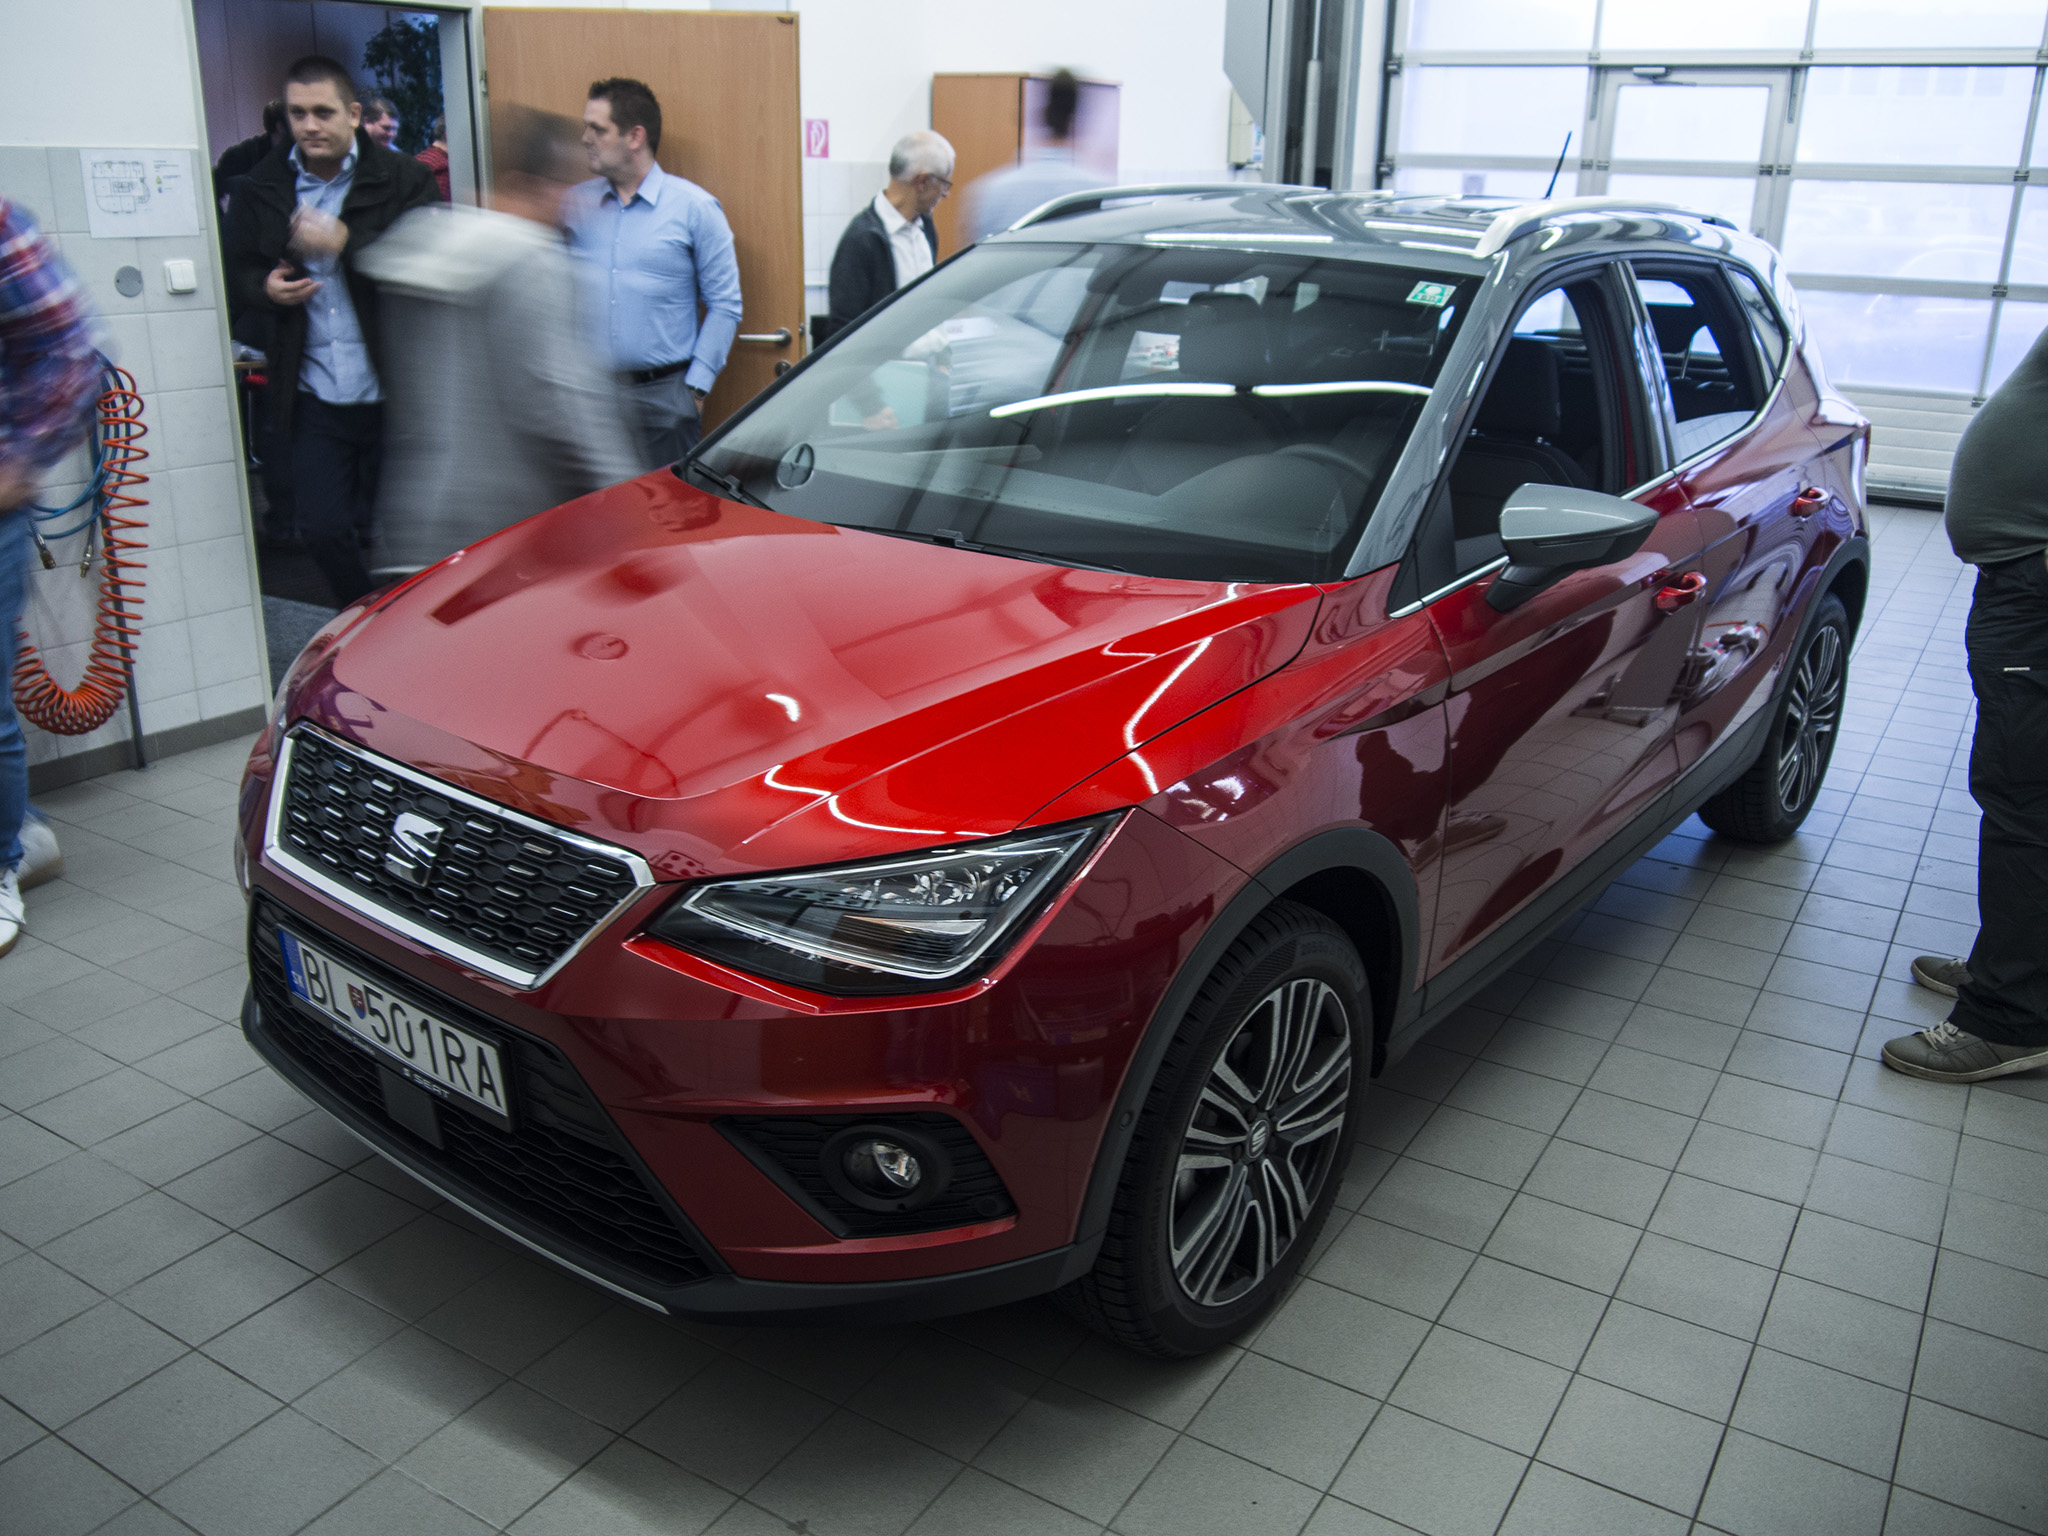 seat arona r f rence seat arona reference ecotsi arona d 39 occasion de 2017 2 000 km 15 640. Black Bedroom Furniture Sets. Home Design Ideas